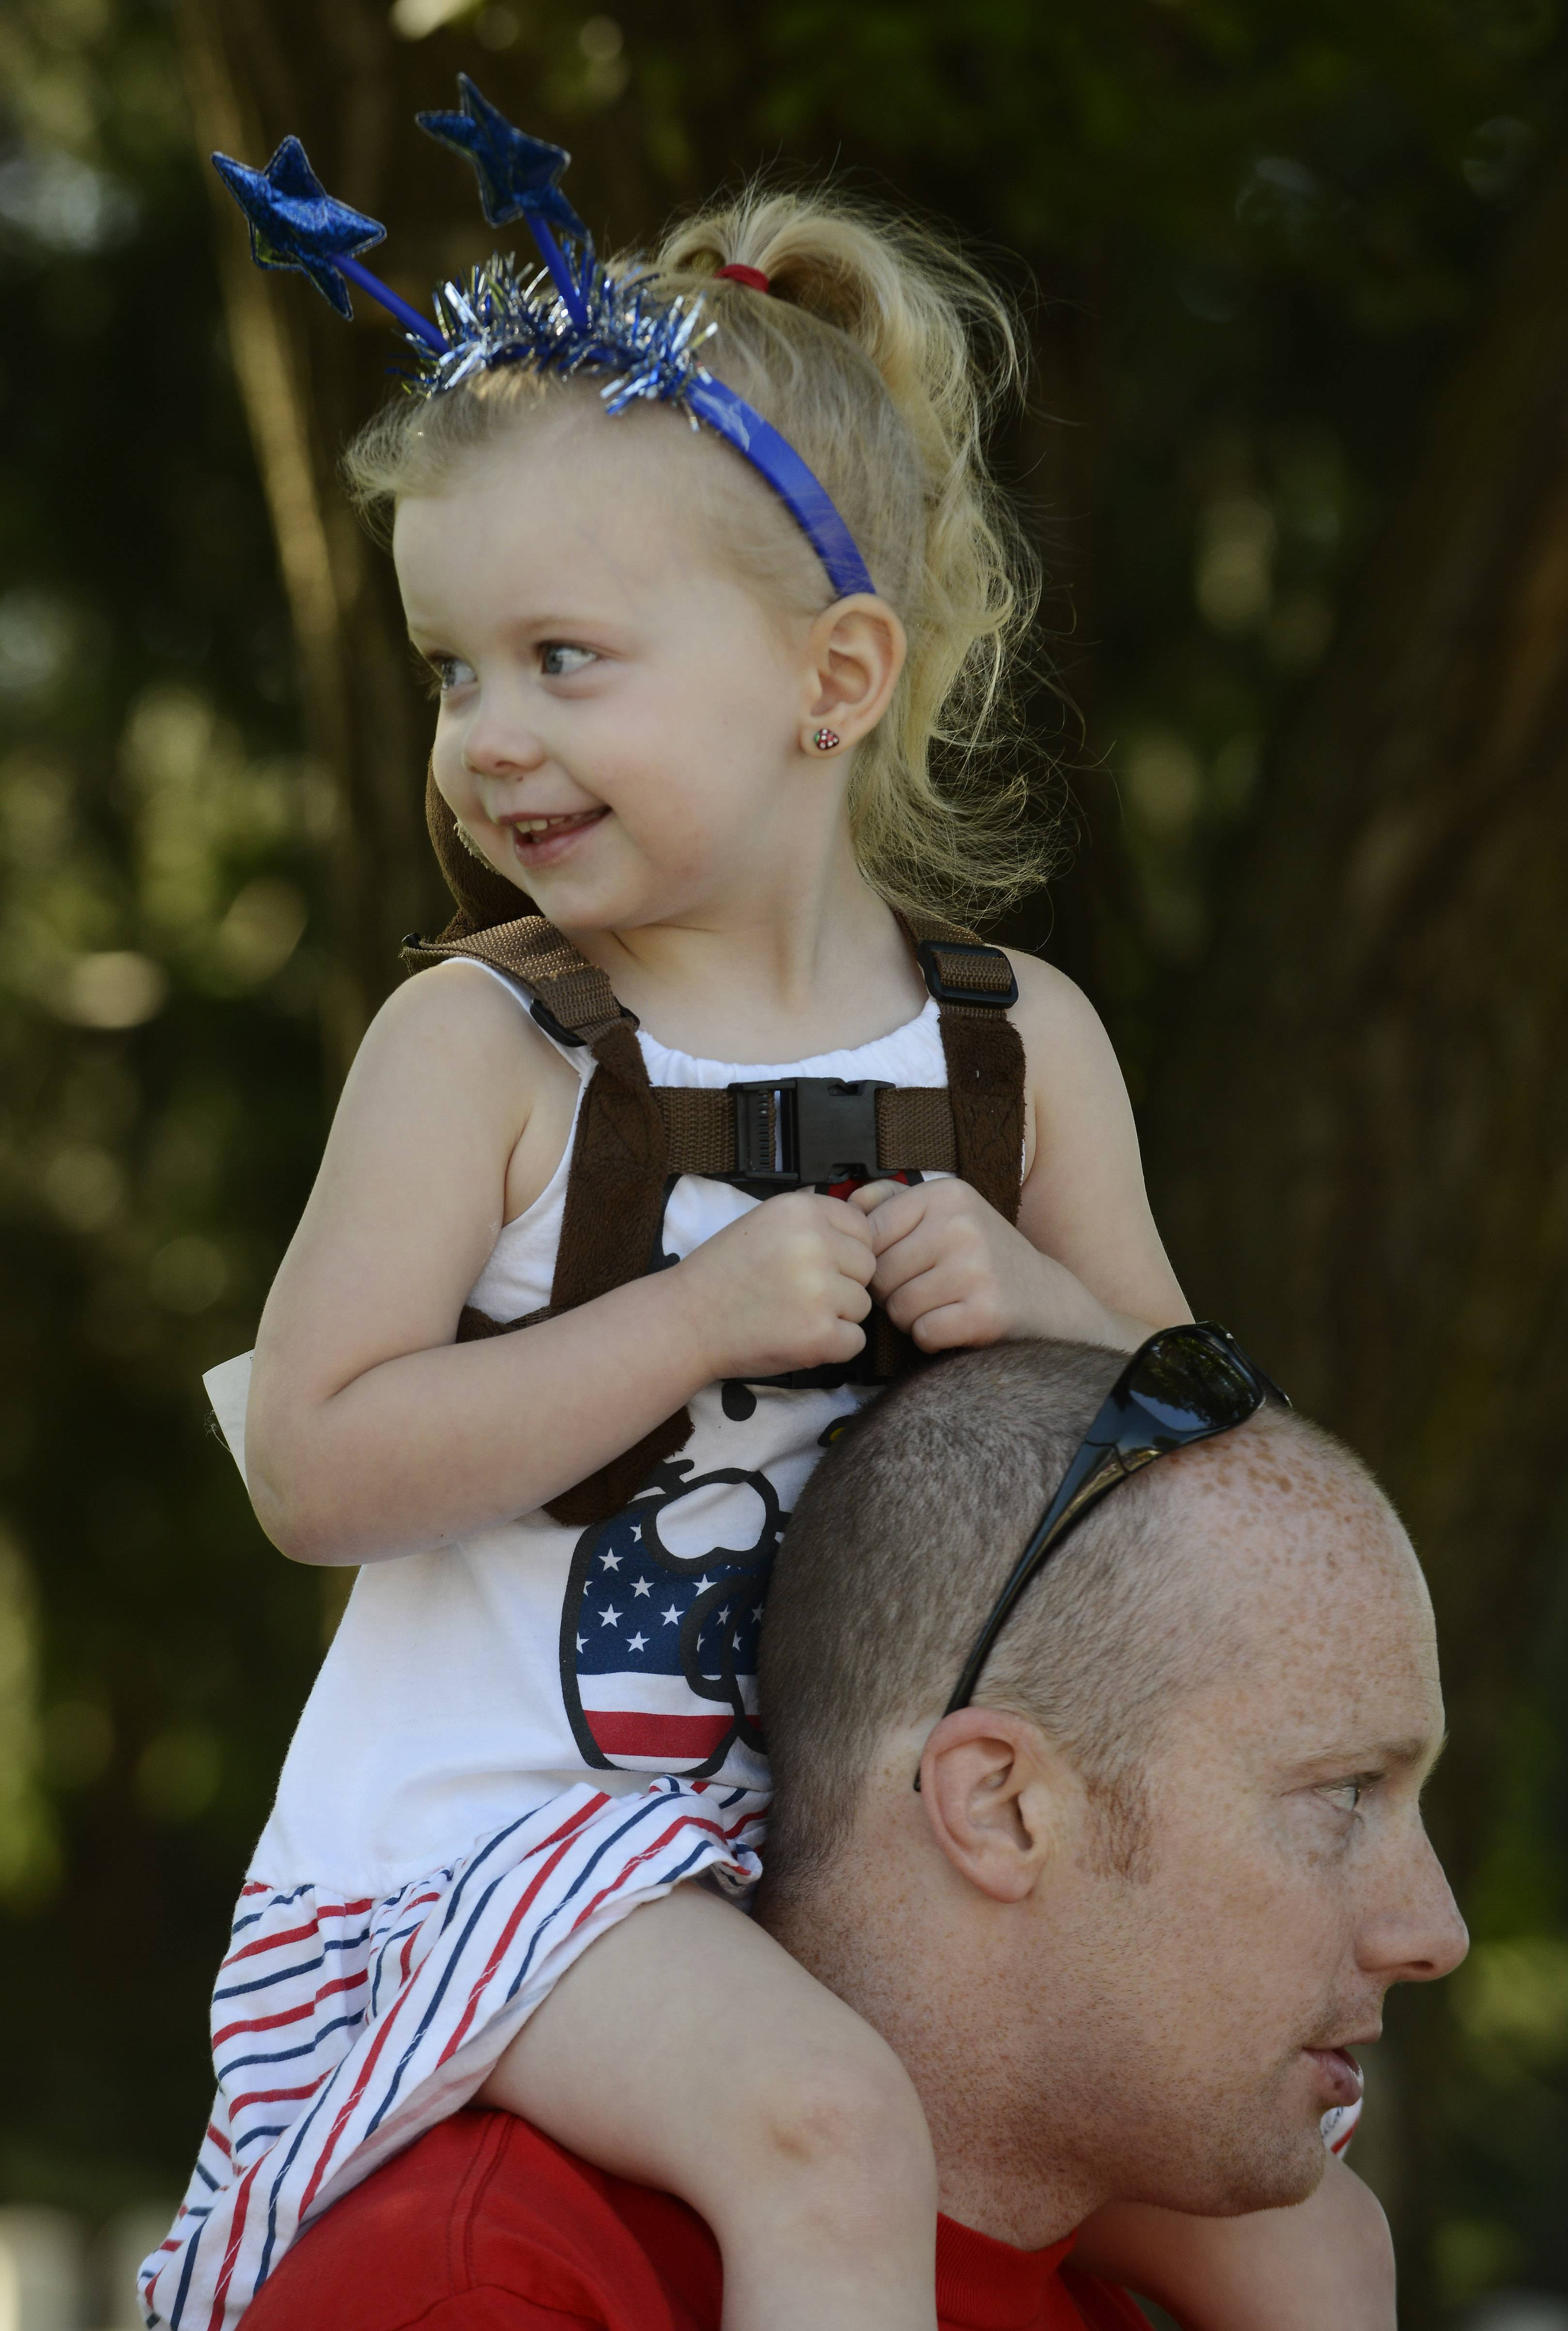 Elle Knoll, 3, of Hoffman Estates rides on the shoulders of her dad, David, during the Hoffman Estates Fourth of July parade Friday.